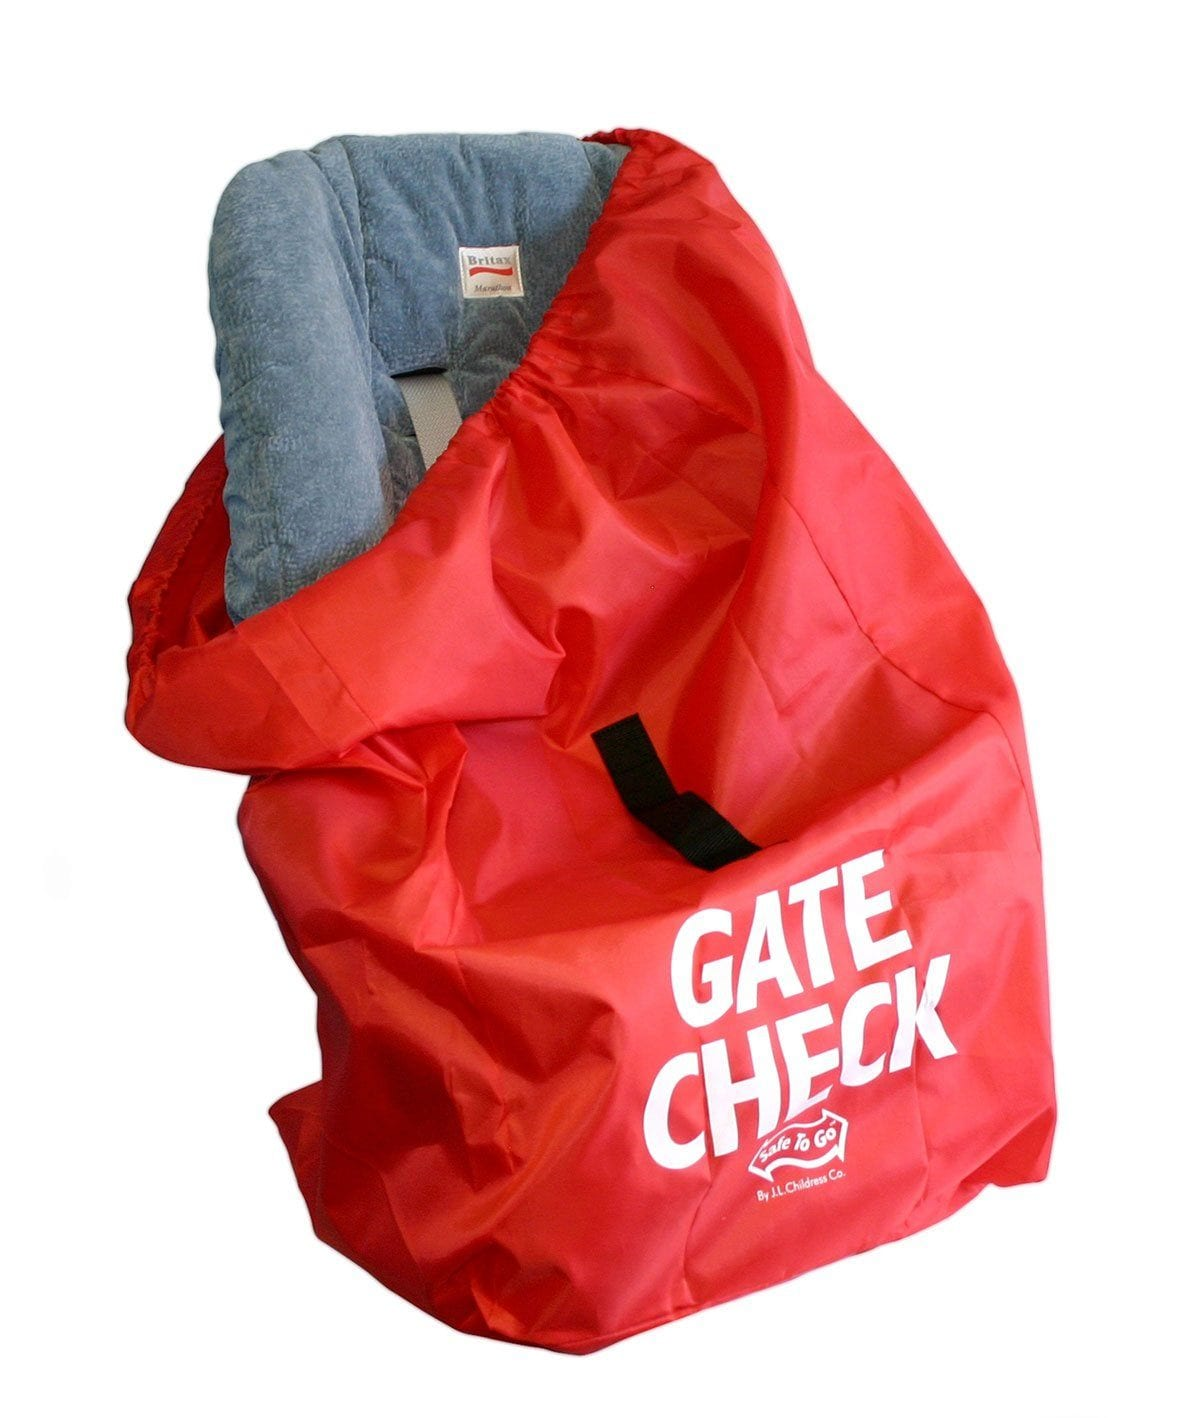 J L Childress Gate Check Car Seat Bag - huggle